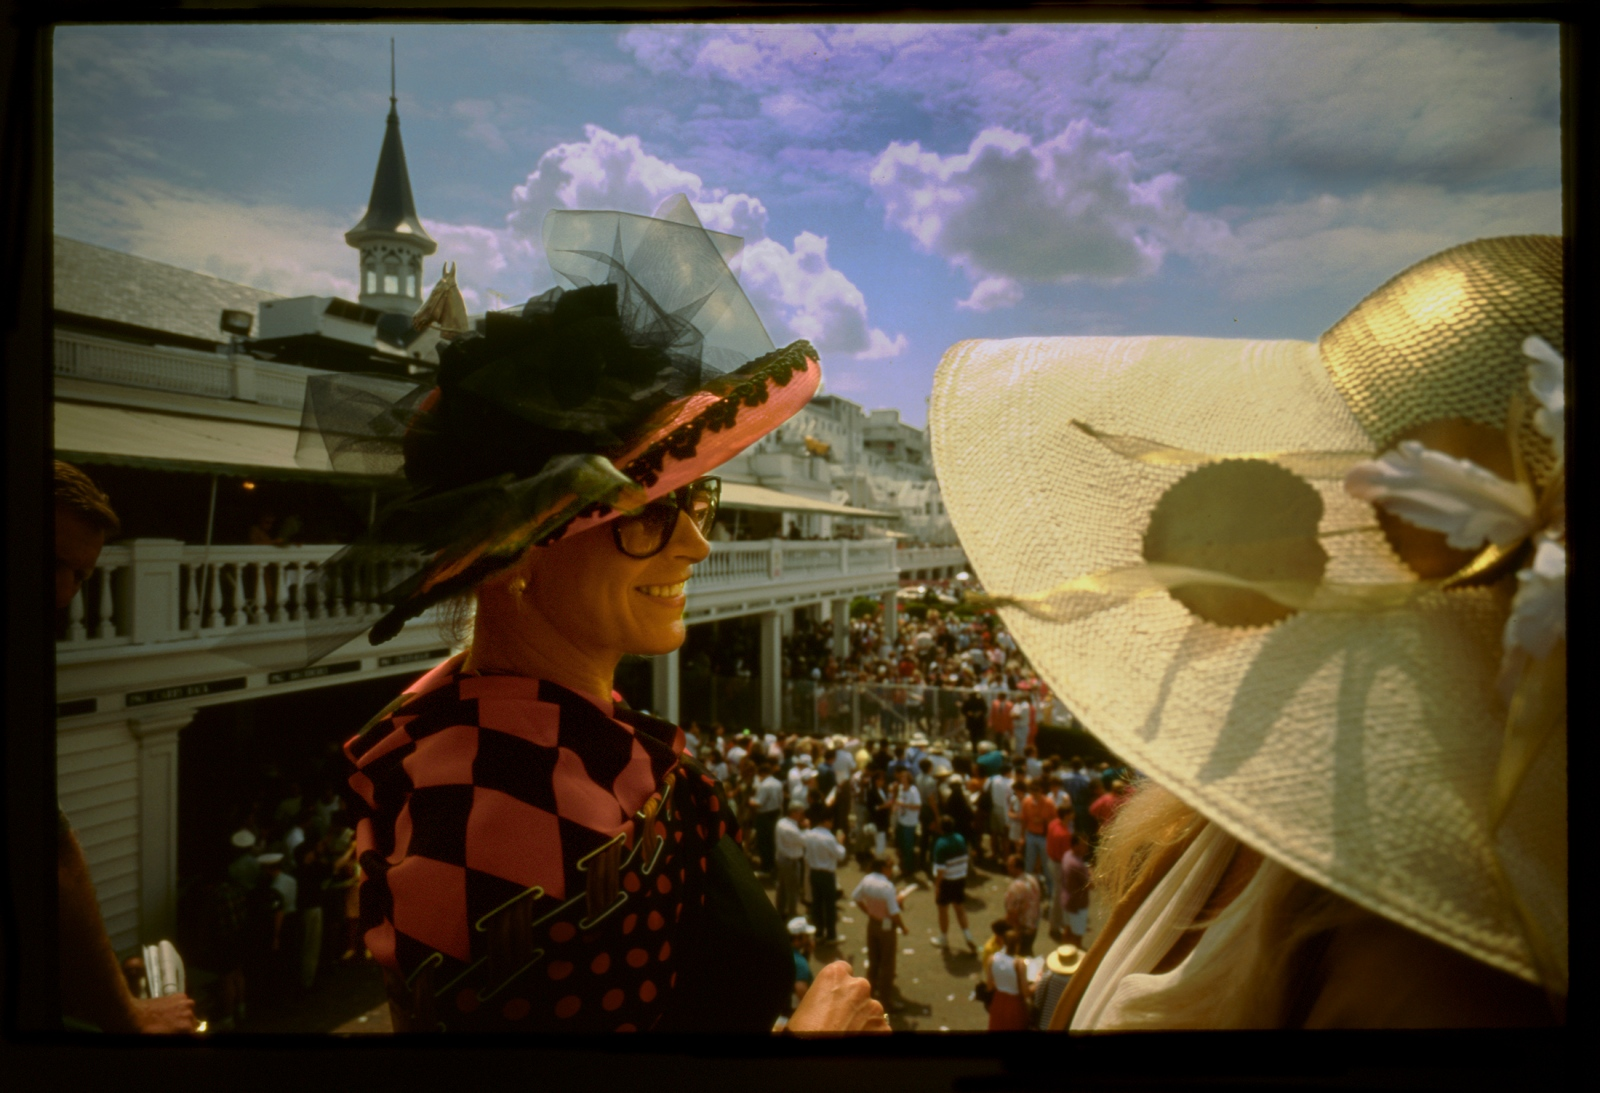 Upper class hats, Kentucky Derby, Louisville, Kentucky, USA.1993.